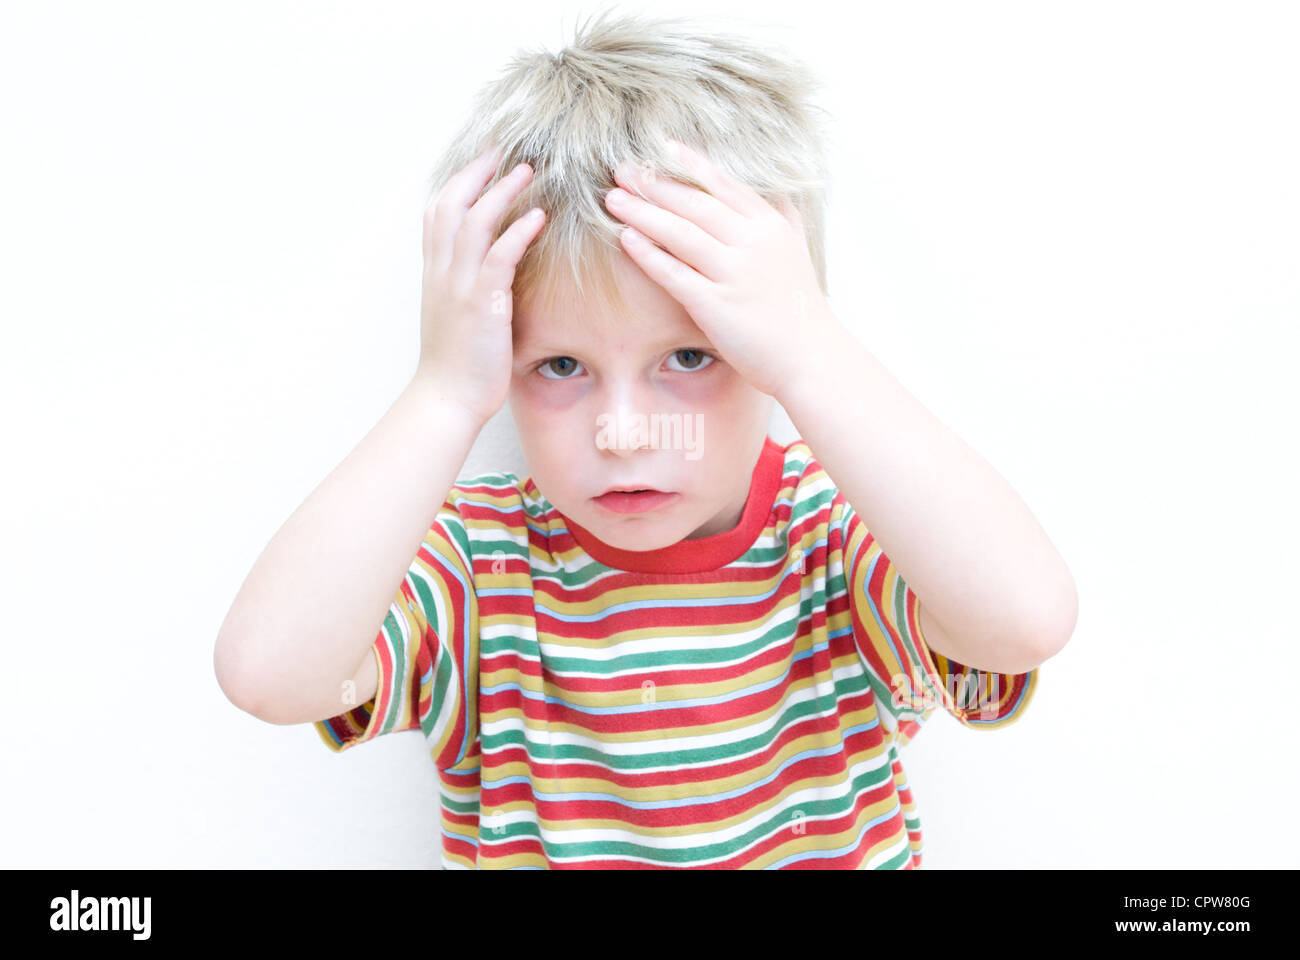 Upset child holding his head in his hands. - Stock Image